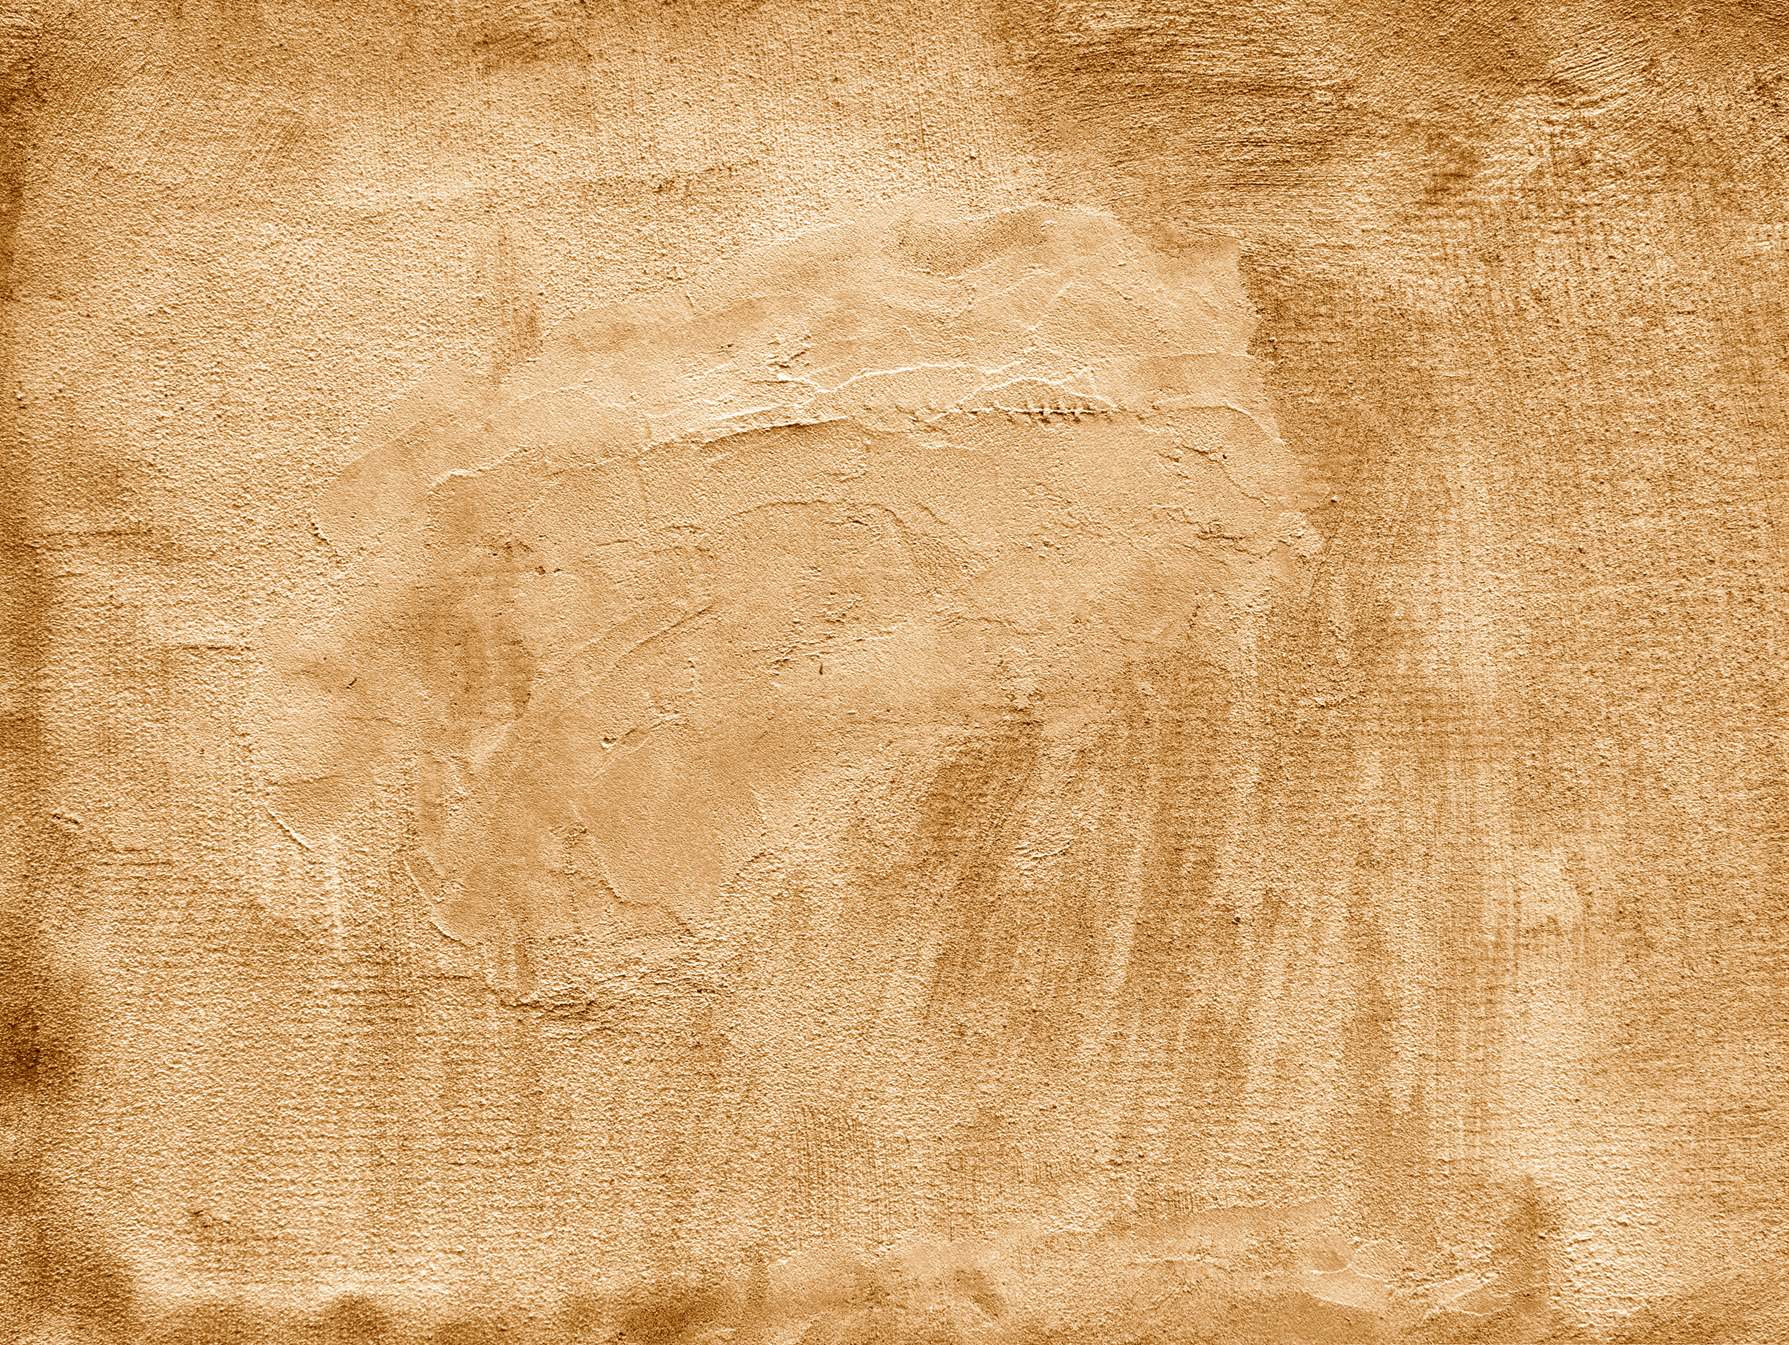 yellow brown vintage concrete wall background texture